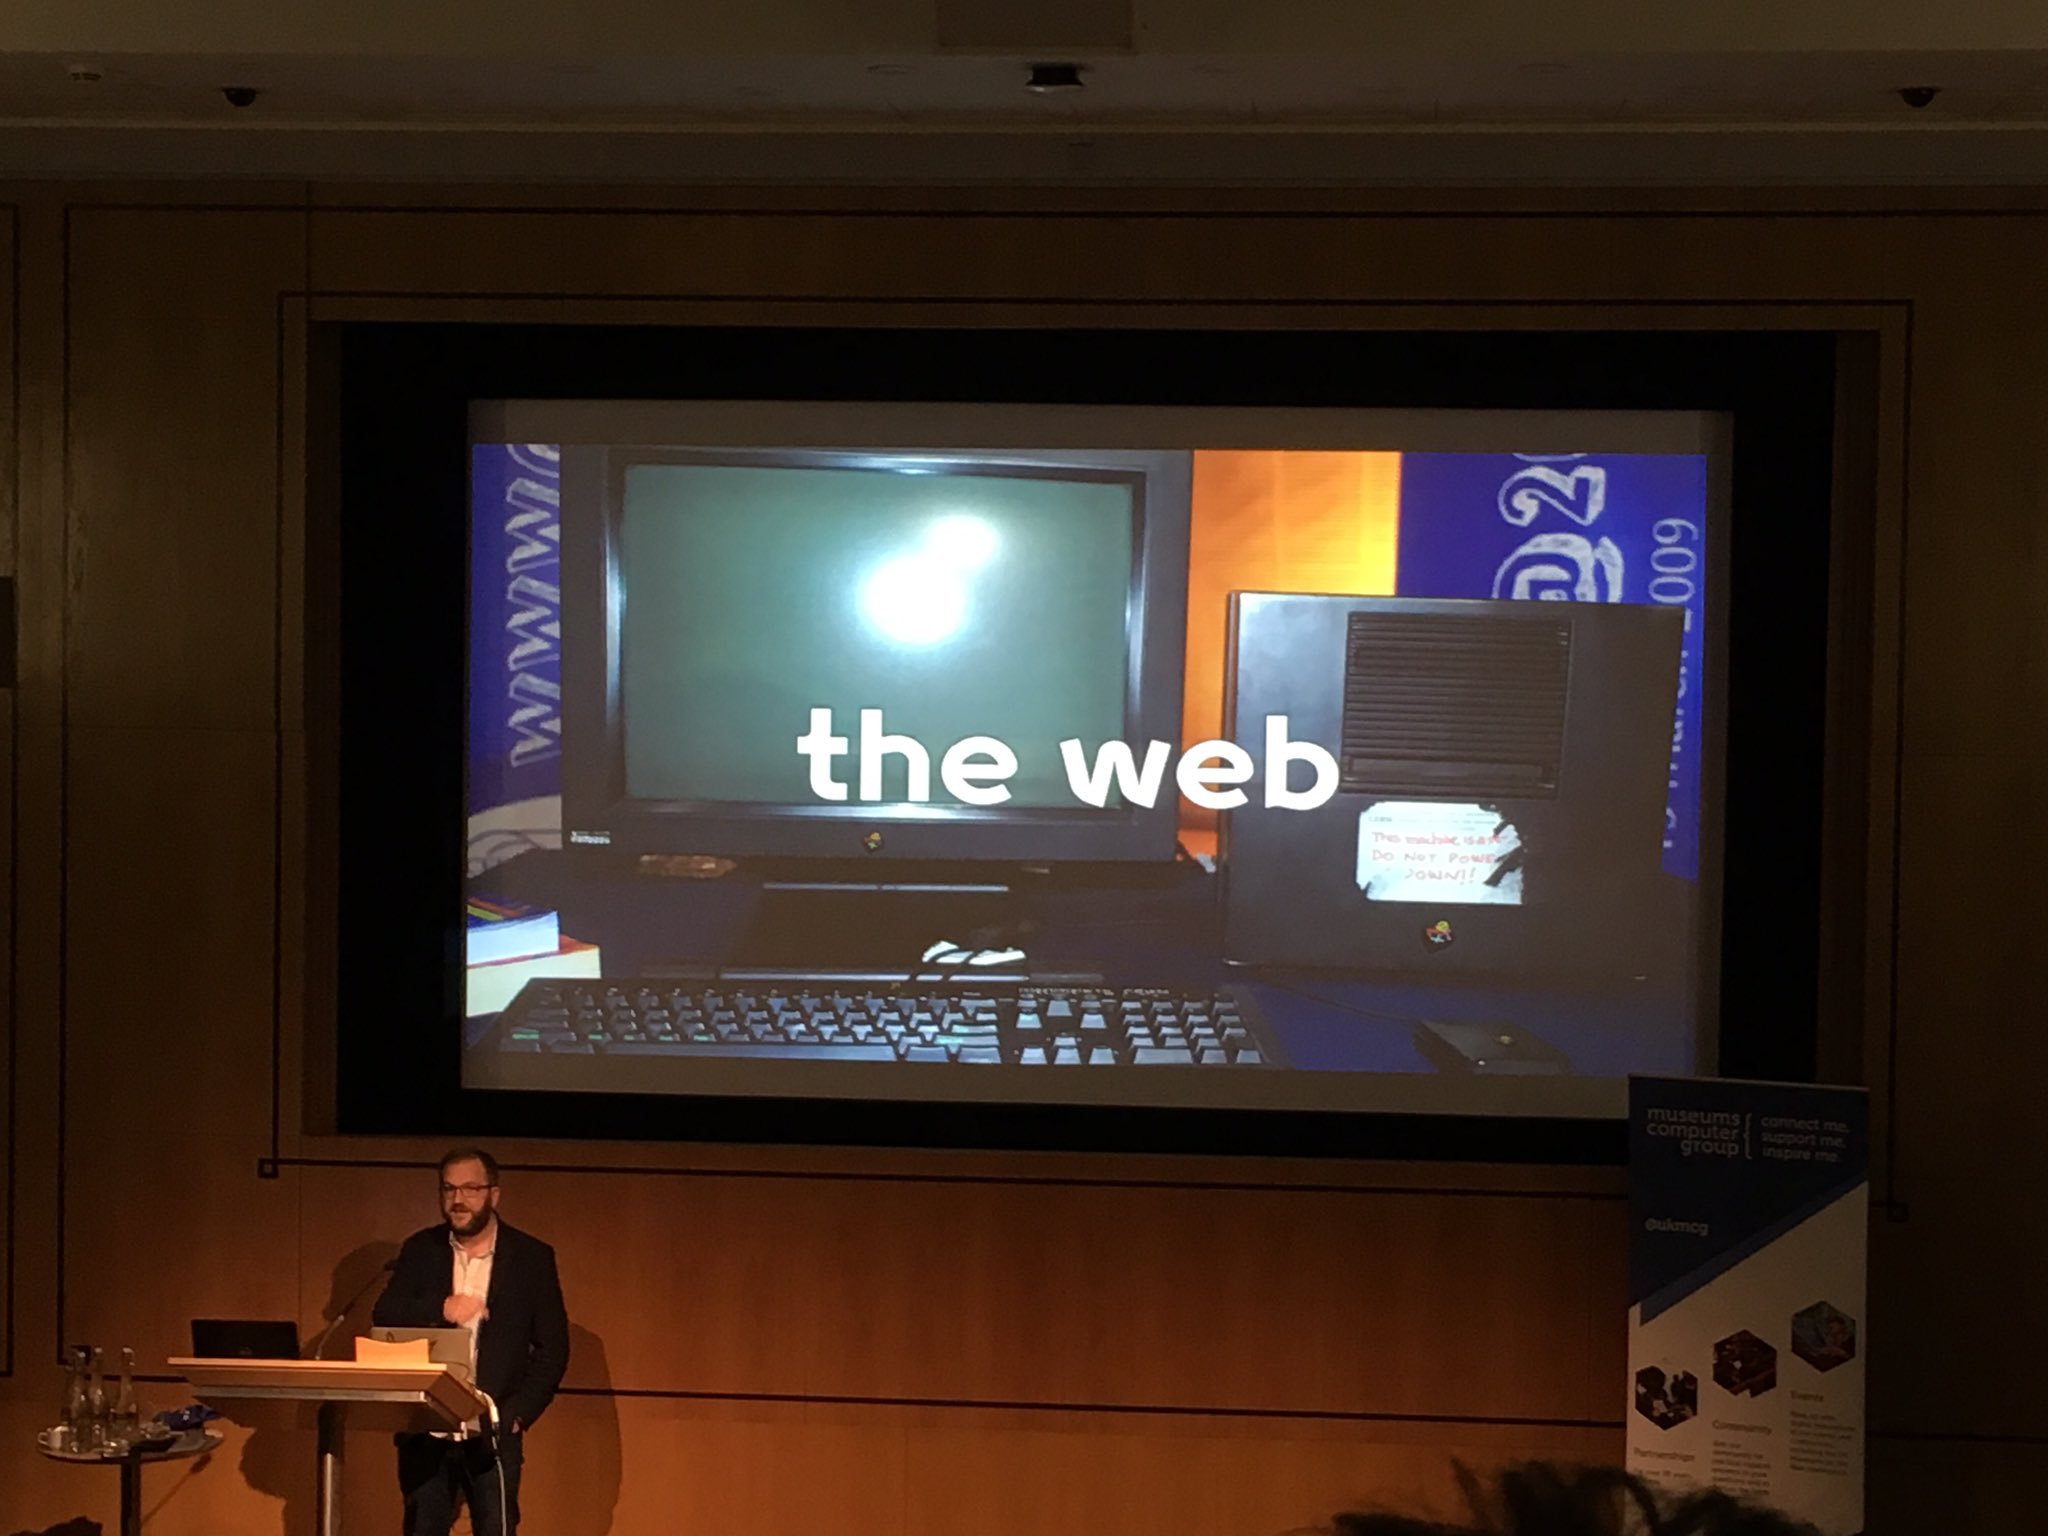 'It used to be that the only way to get into a library/archive was to be a rich, dead male...then suddenly, THE WEB.' #musetech16 https://t.co/ubfbE5dT57